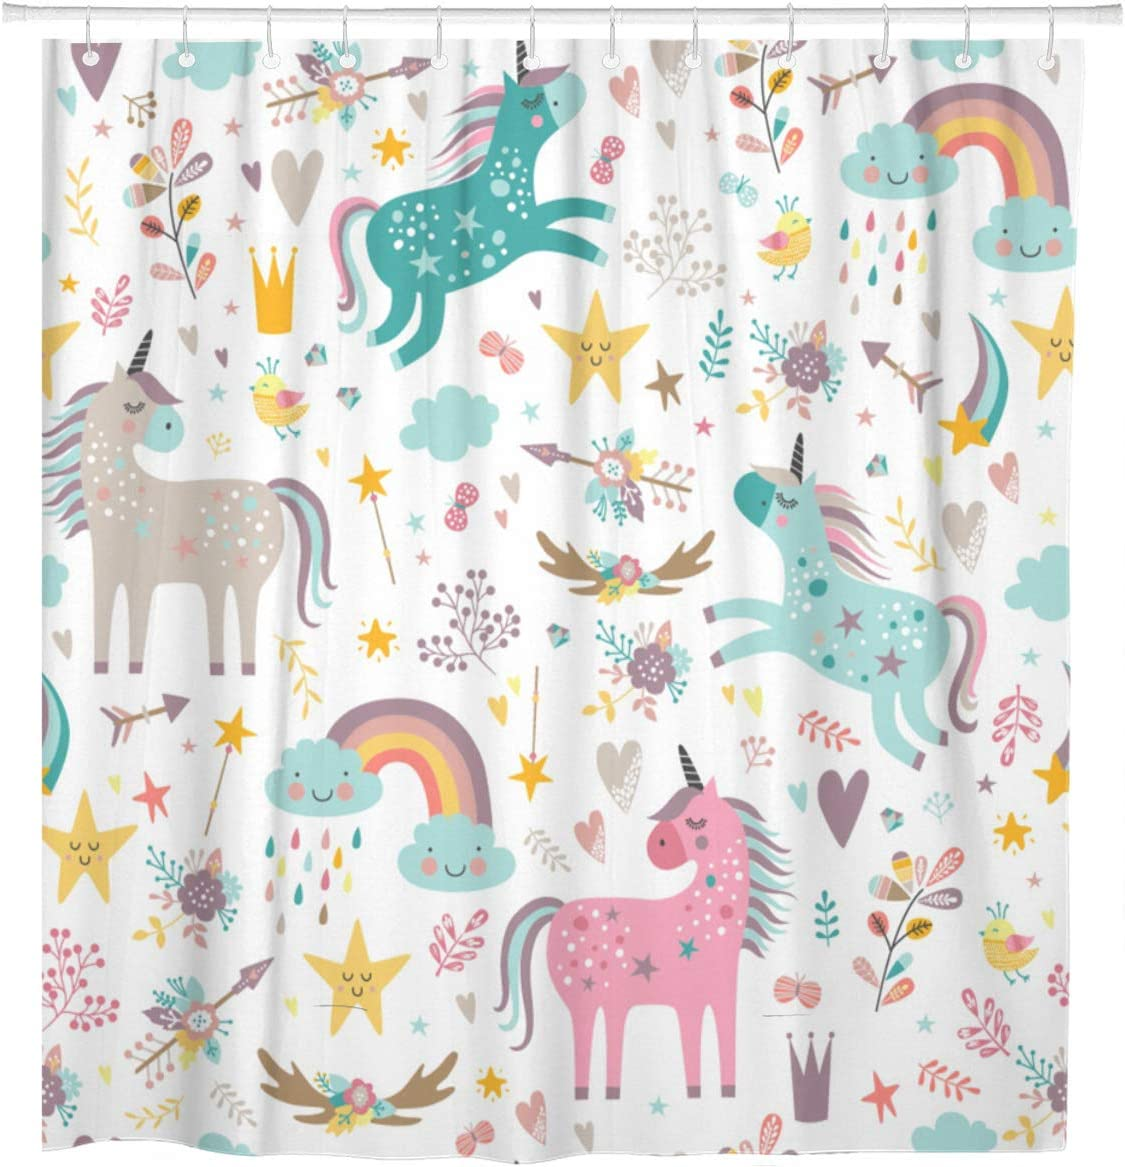 Emvency Shower Curtain Blue Pattern Unicorns Pink Baby Girl Animal Arrow Beautiful Waterproof Polyester Fabric 72 x 72 Inches Set with Hooks